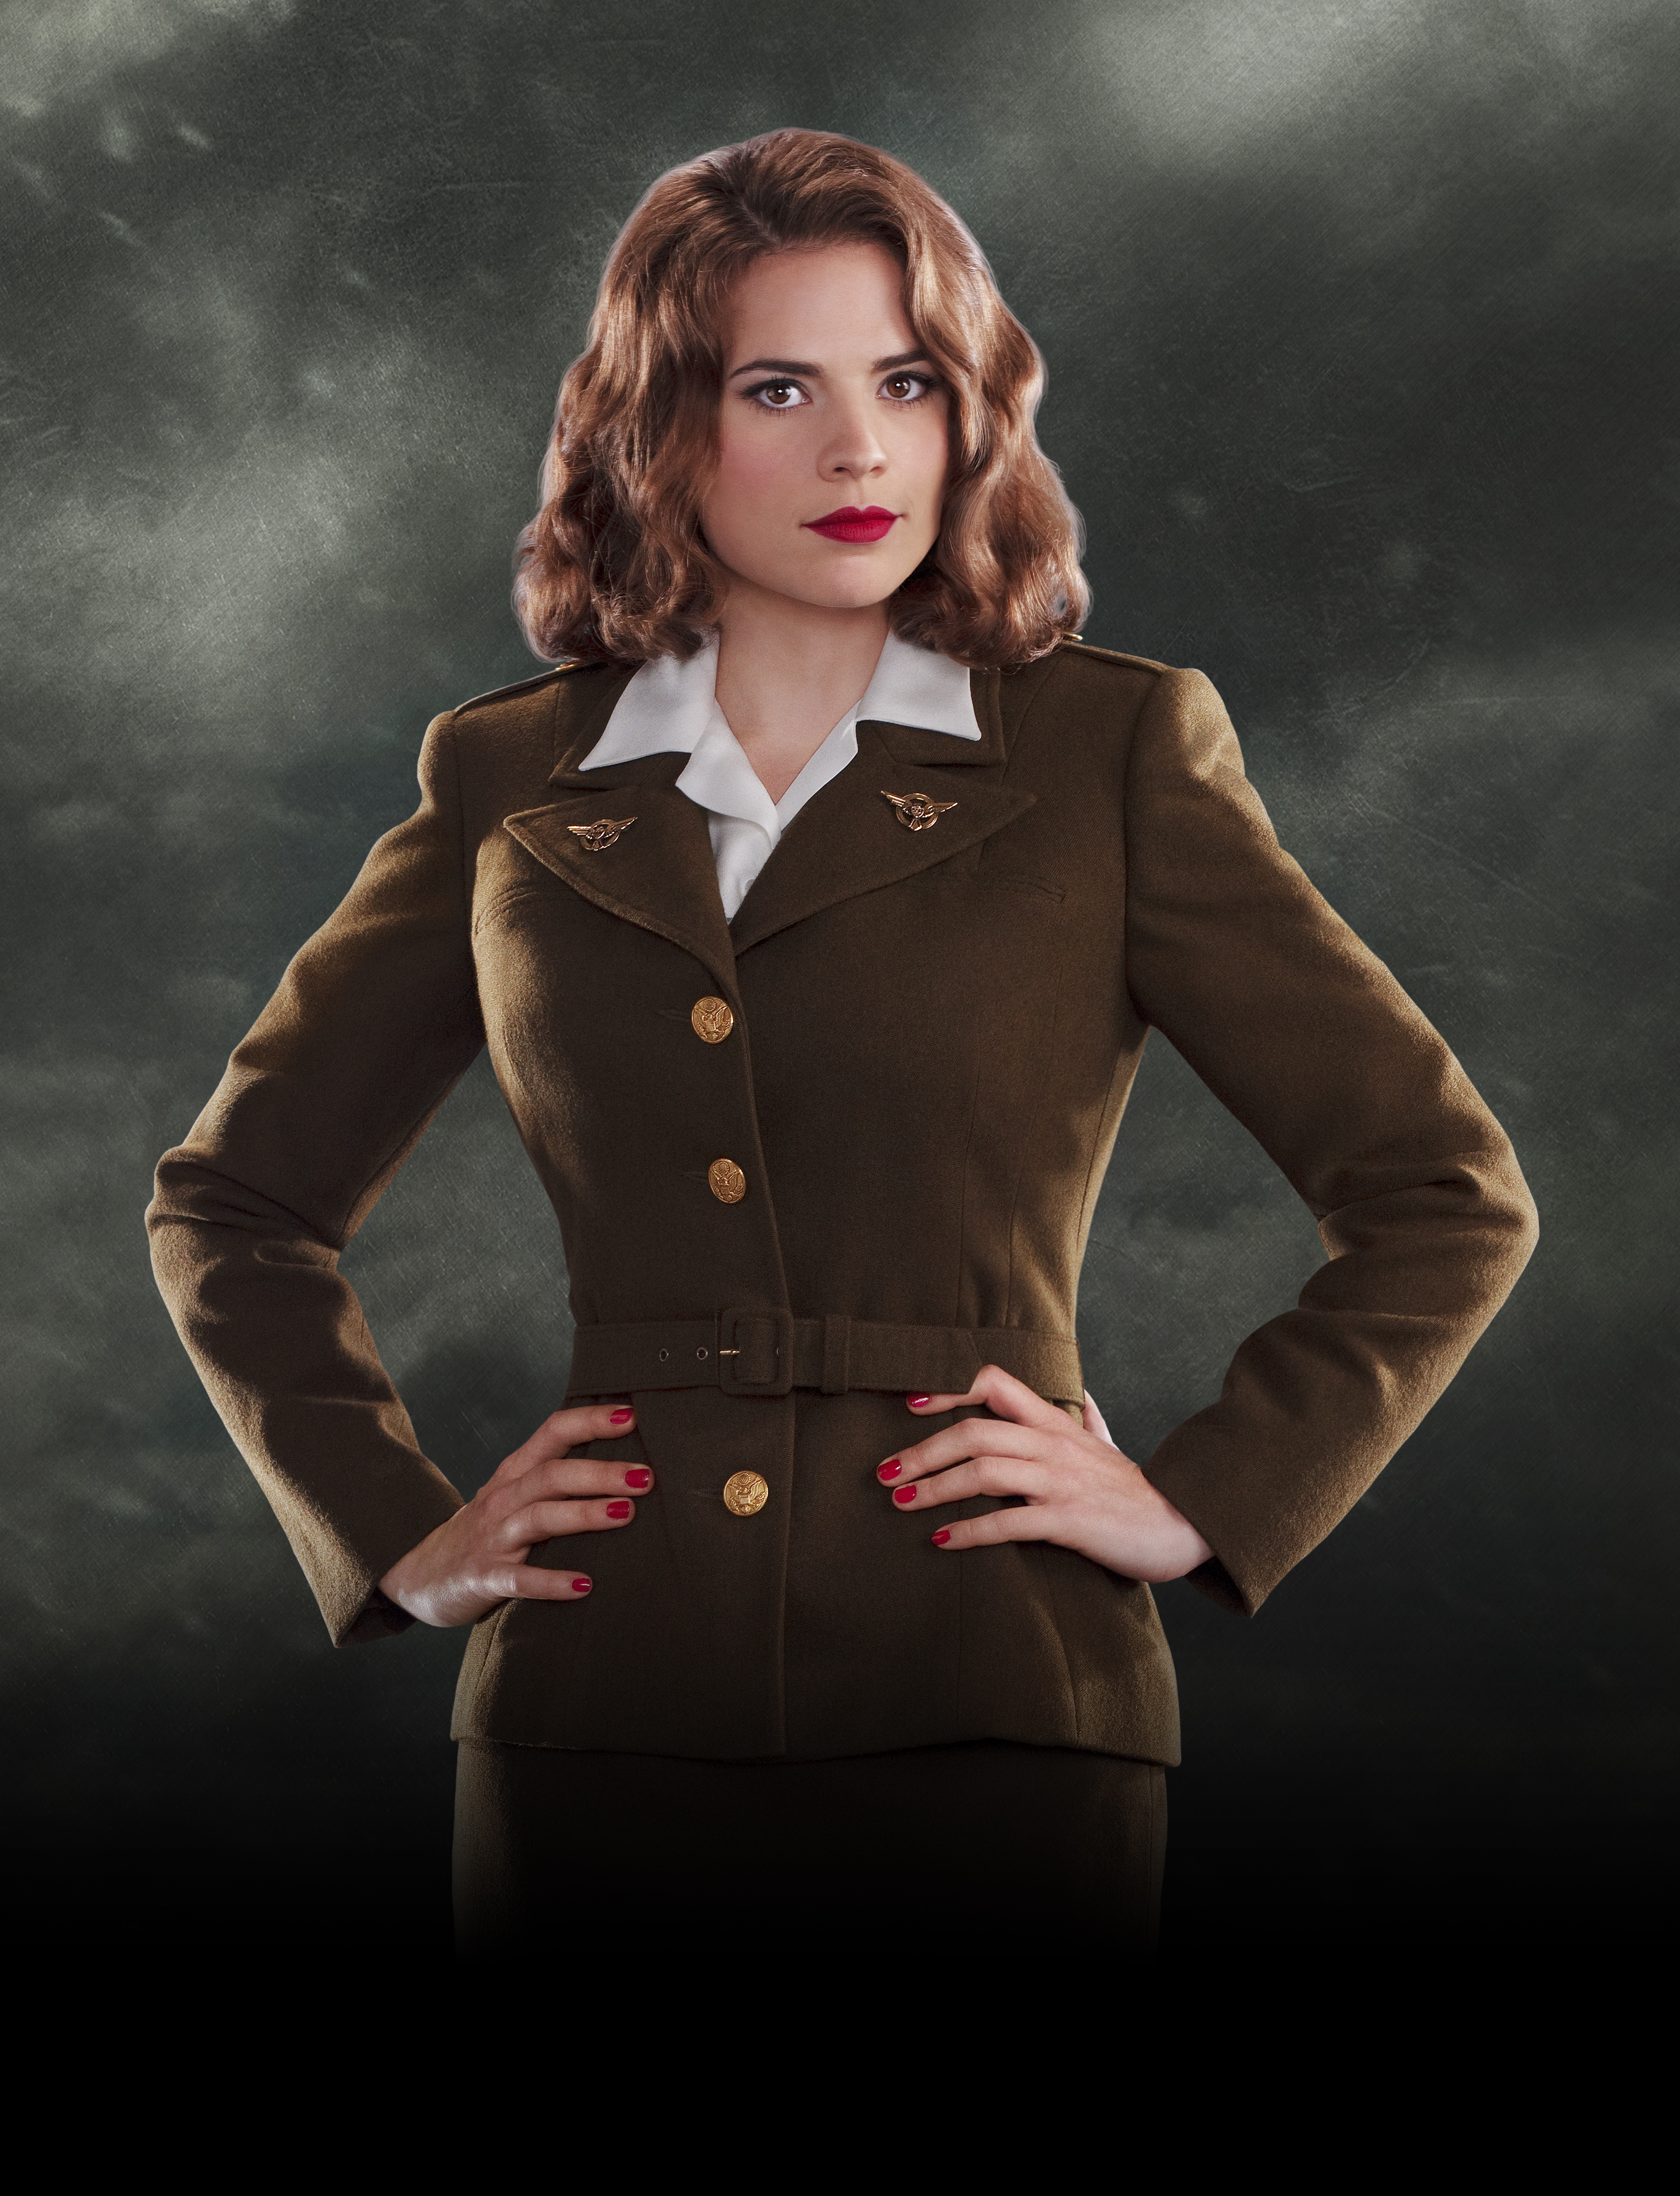 Images of Agent Carter | 2738x3579